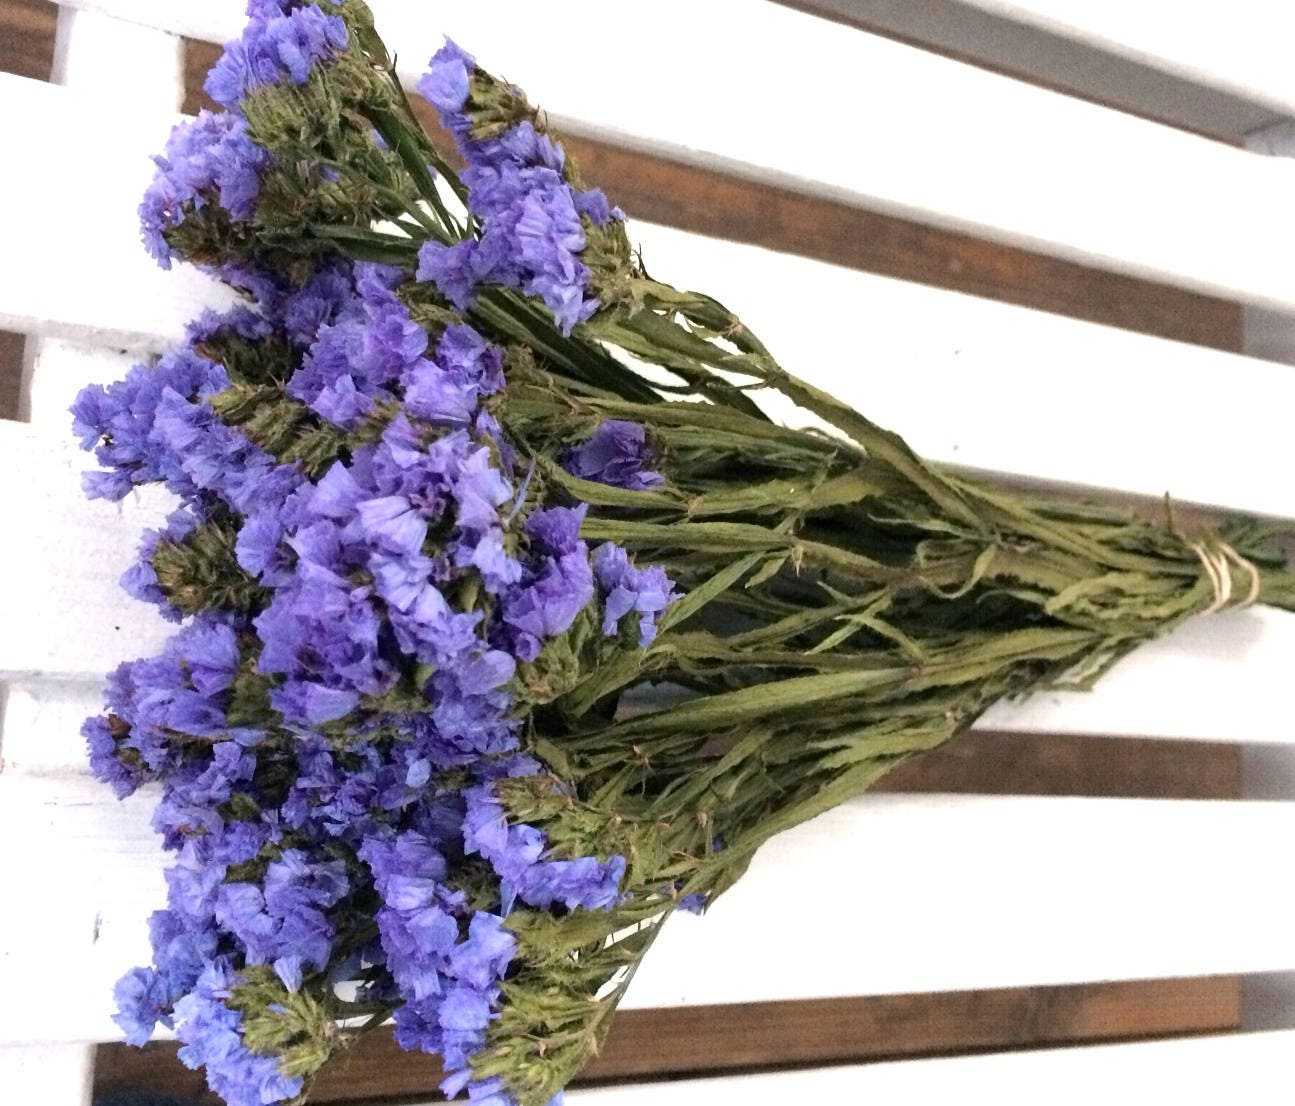 Dried flowers bunch violet blue statice sinuata flowers wedding dried flowers bunch violet blue statice sinuata flowers wedding flowers cottage floral decor folk shabby country flowers preserved from izmirmasajfo